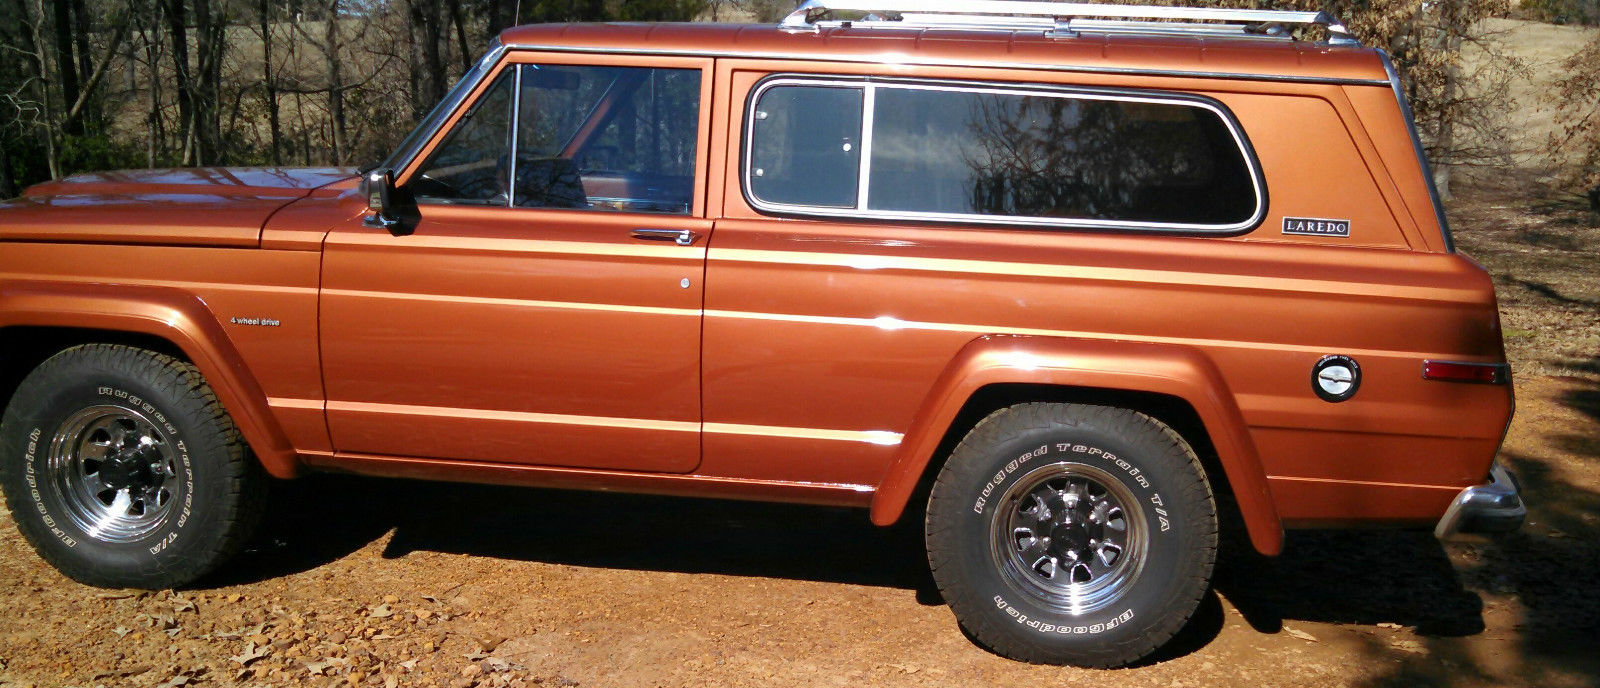 1979 jeep cherokee chief s 2 door classic jeep cherokee 1979 for sale. Black Bedroom Furniture Sets. Home Design Ideas